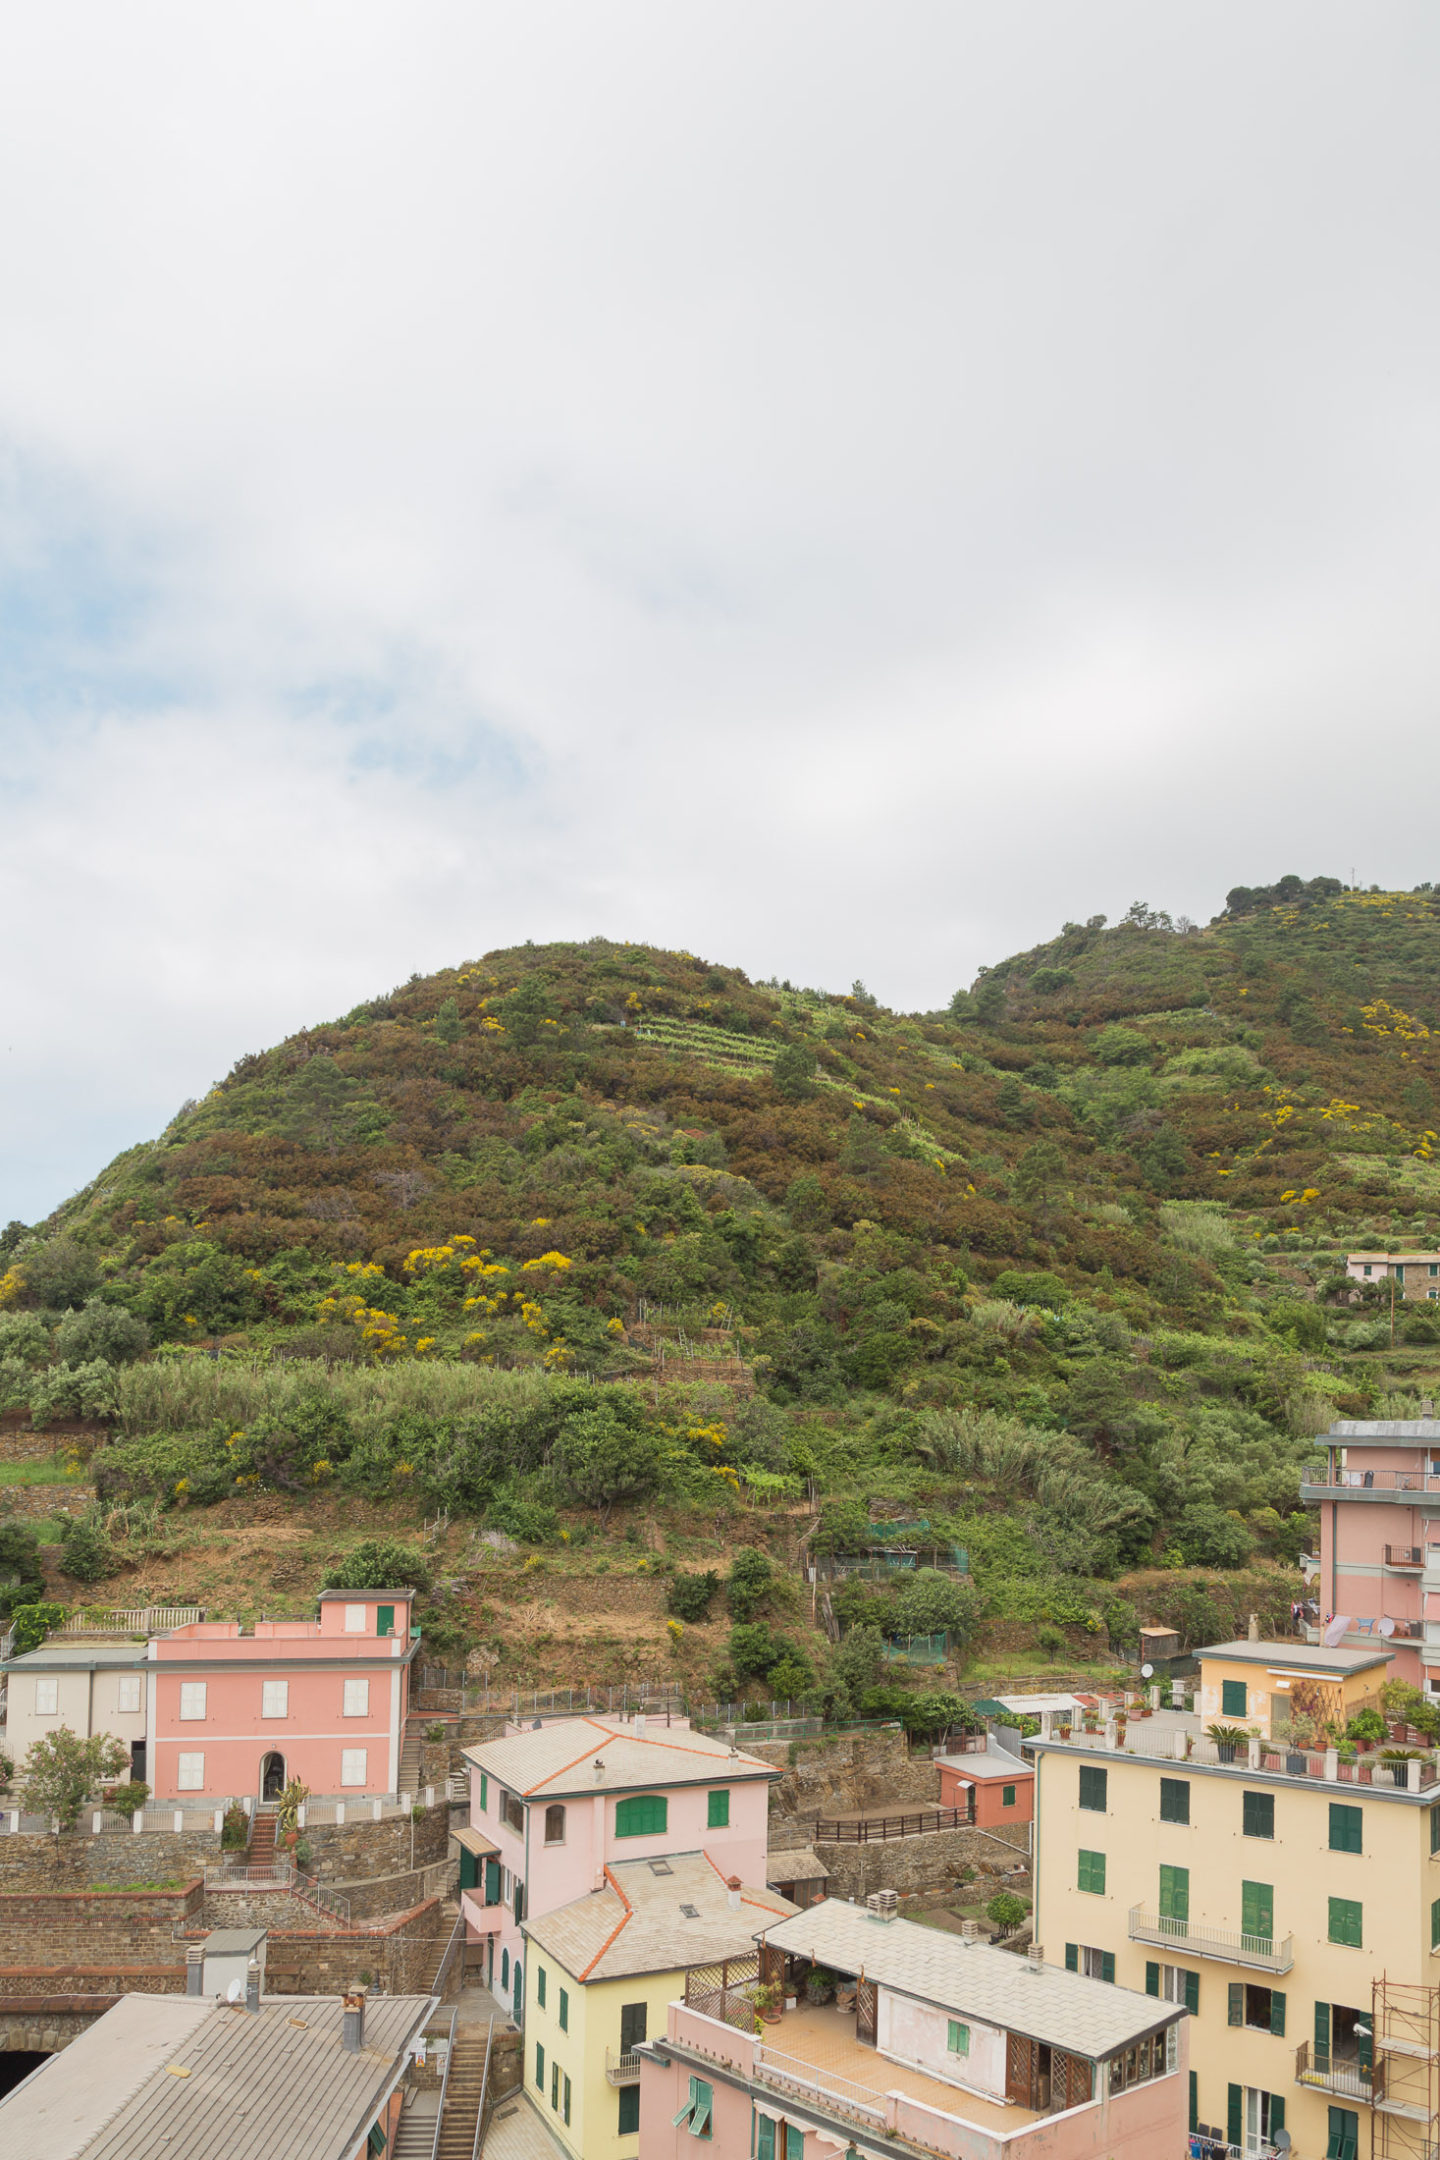 Riomaggiore in Cinque Terre - some faded pinkish and yellow buildings to the backdrop of a green hill and cloudy blue sky